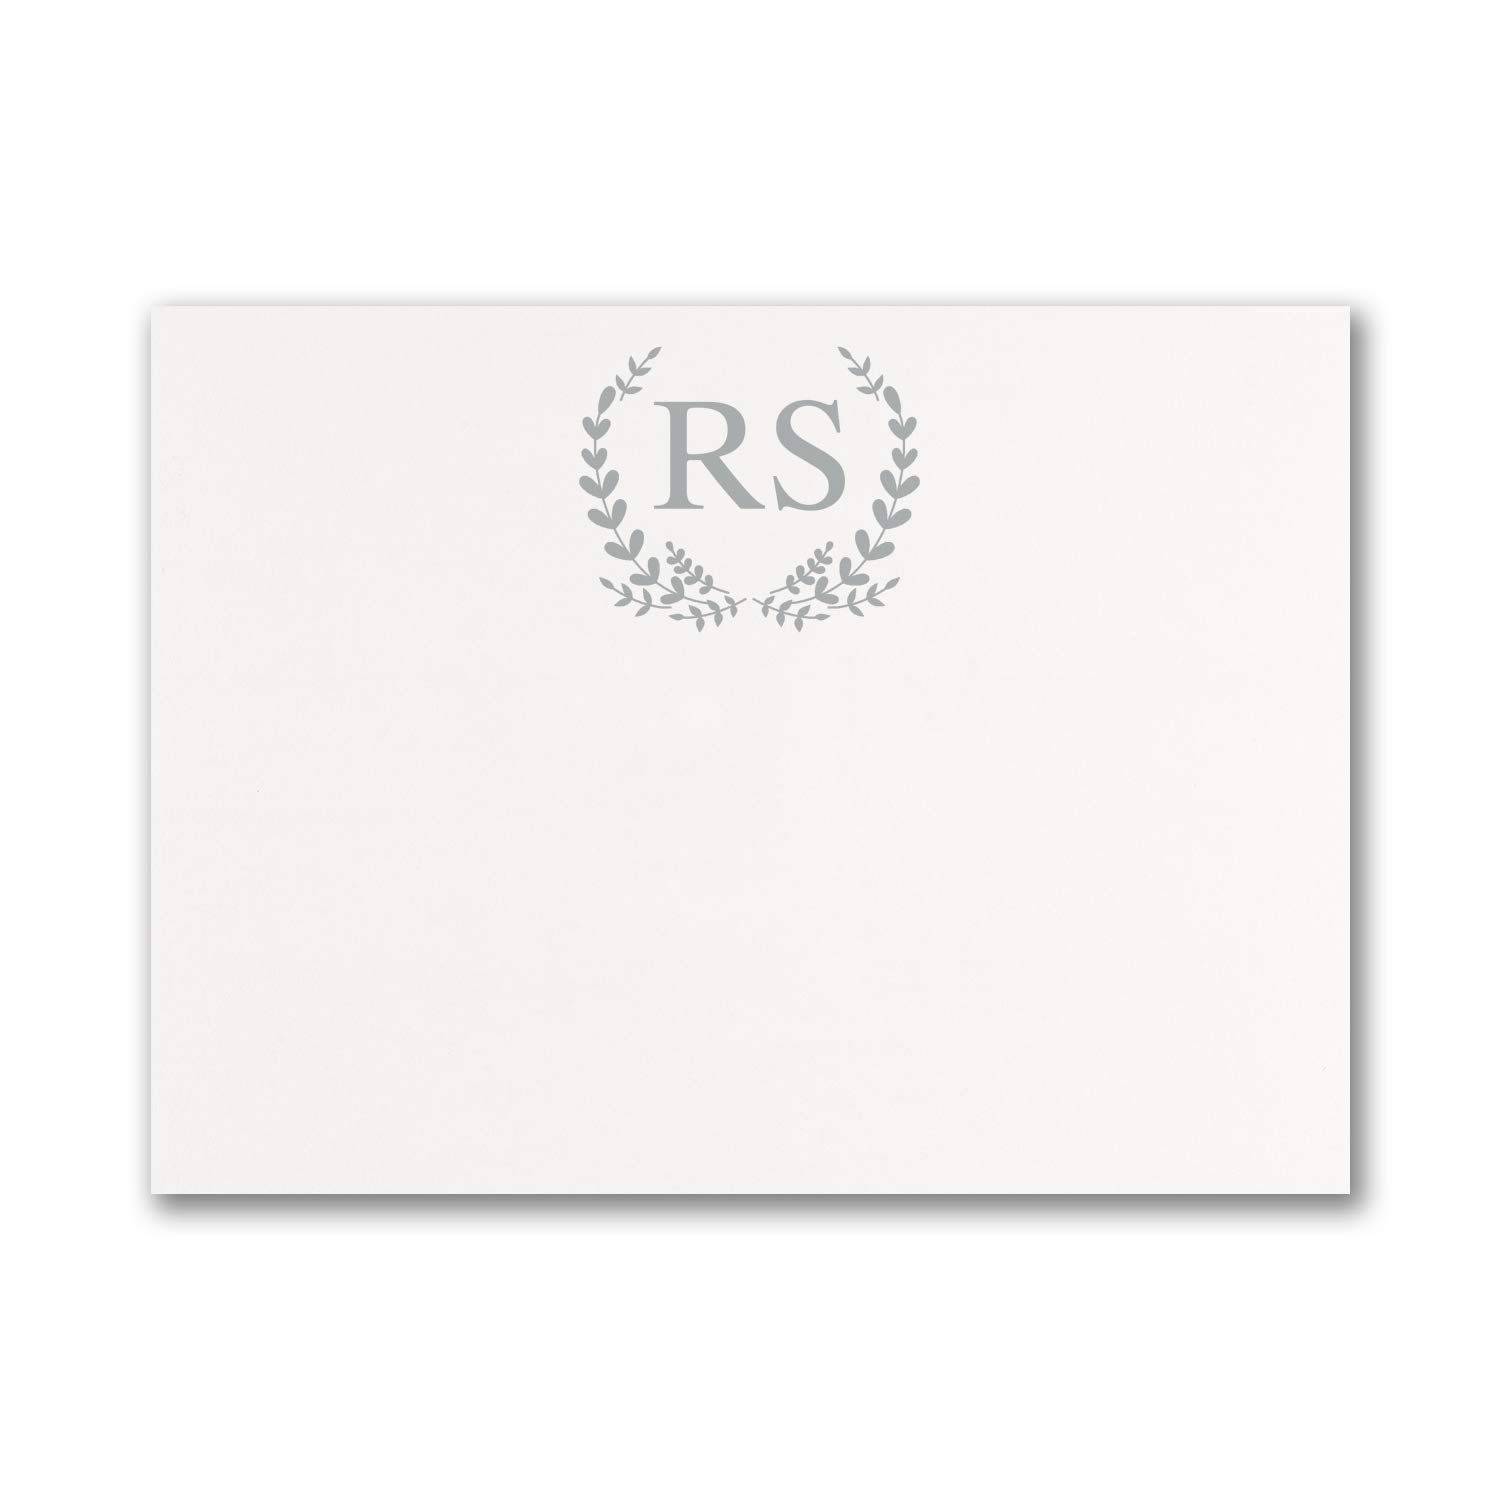 200pk Whimsical Monogram - Note Card-Note Cards by Carlson Craft (Image #1)